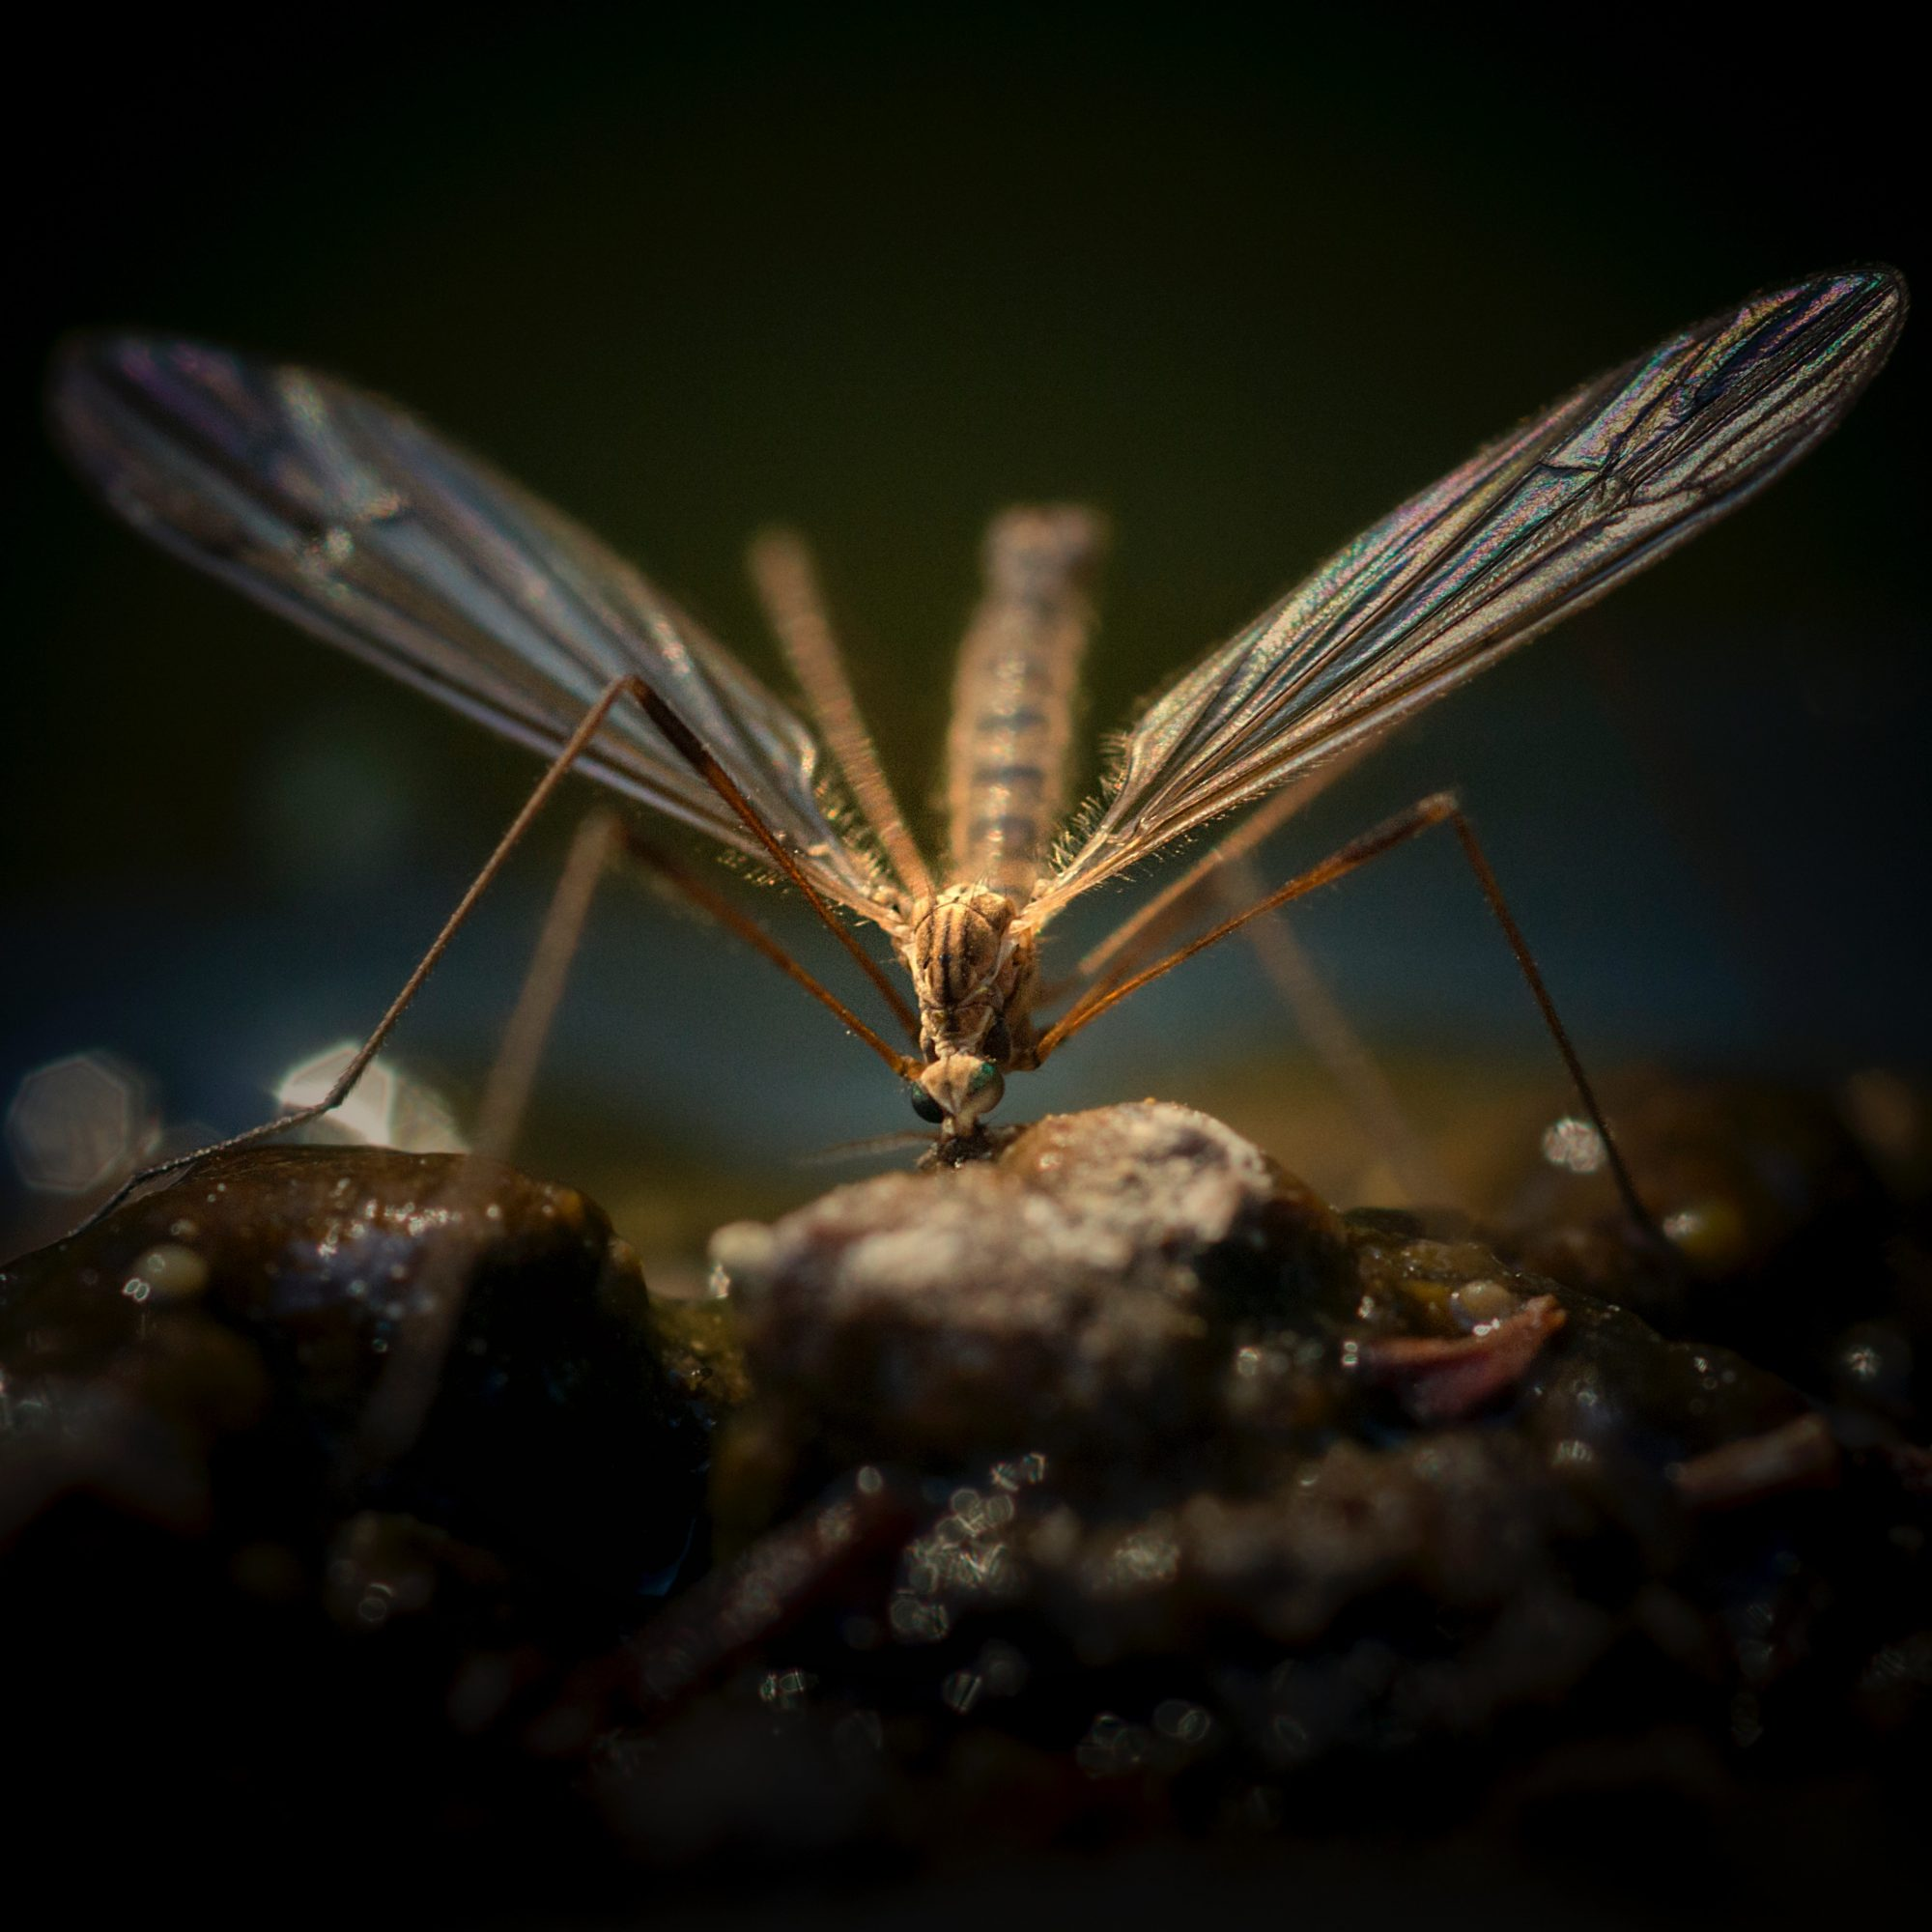 mosquito sitting on a rock